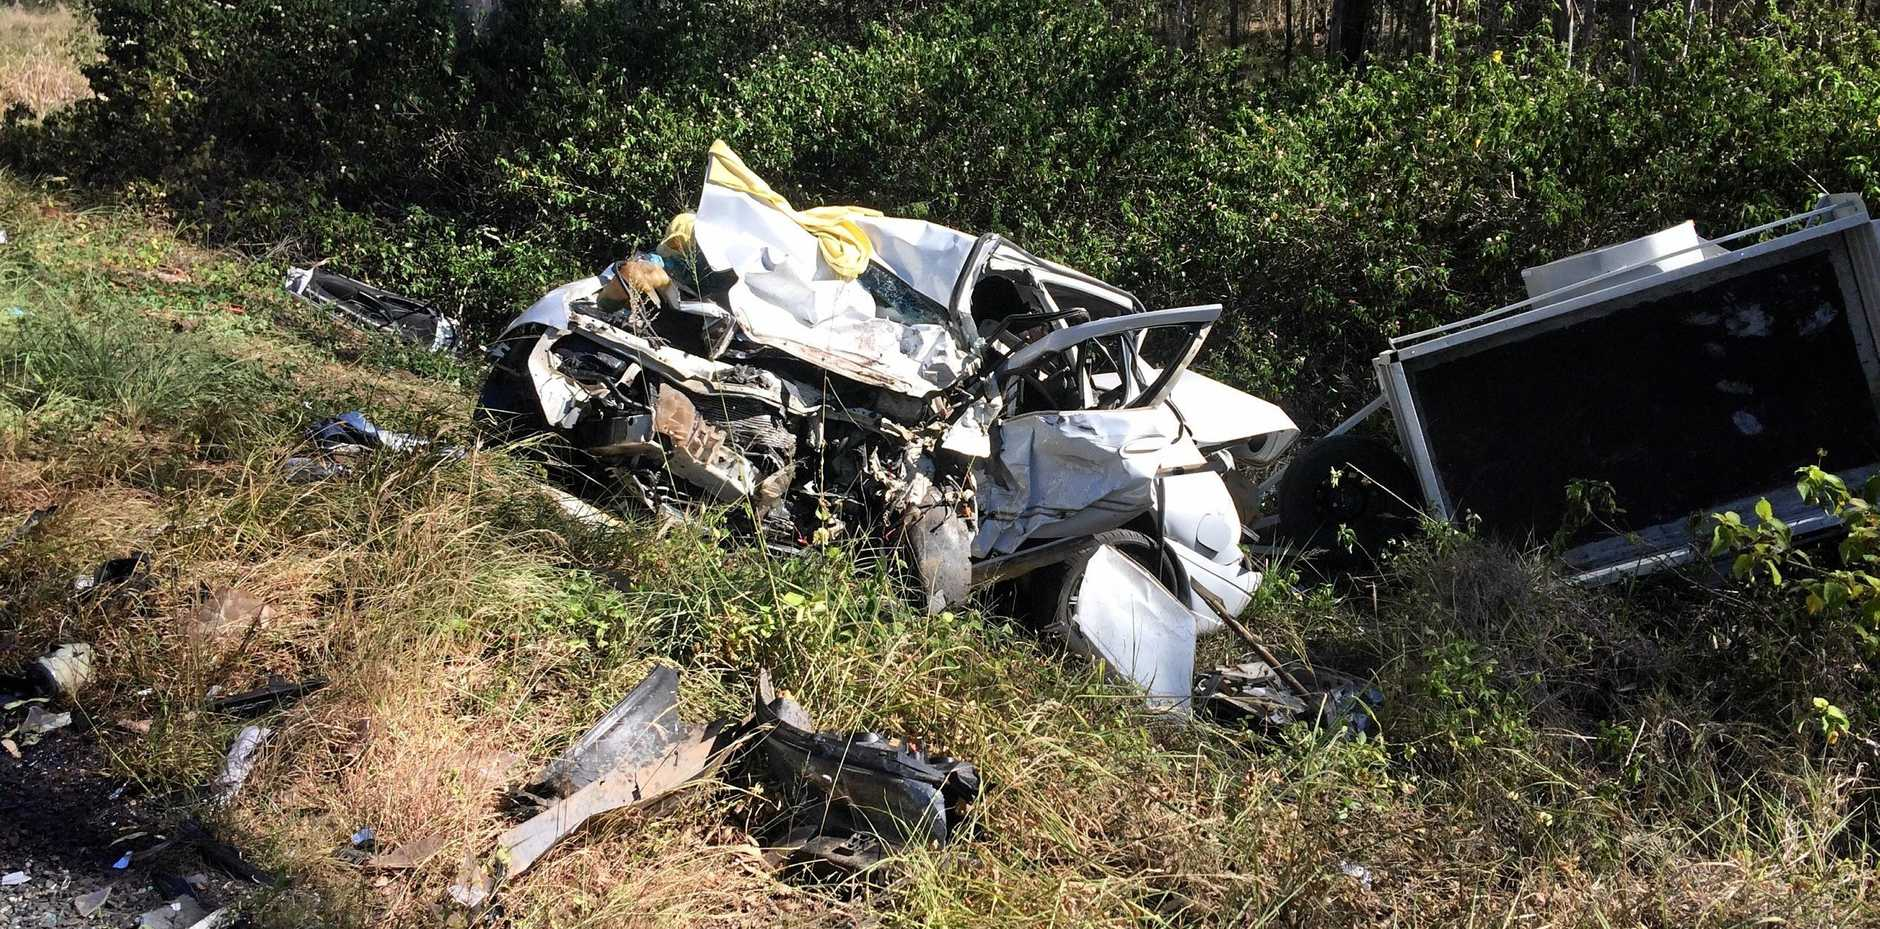 A MAN had to be cut from his wrecked Ford Falcon after being seriously injured in a two-vehicle crash on the Wide Bay Hwy at Lower Wonga on January 13 last year. Now he has appeared in Gympie Magistrates Court on a drug driving charge.